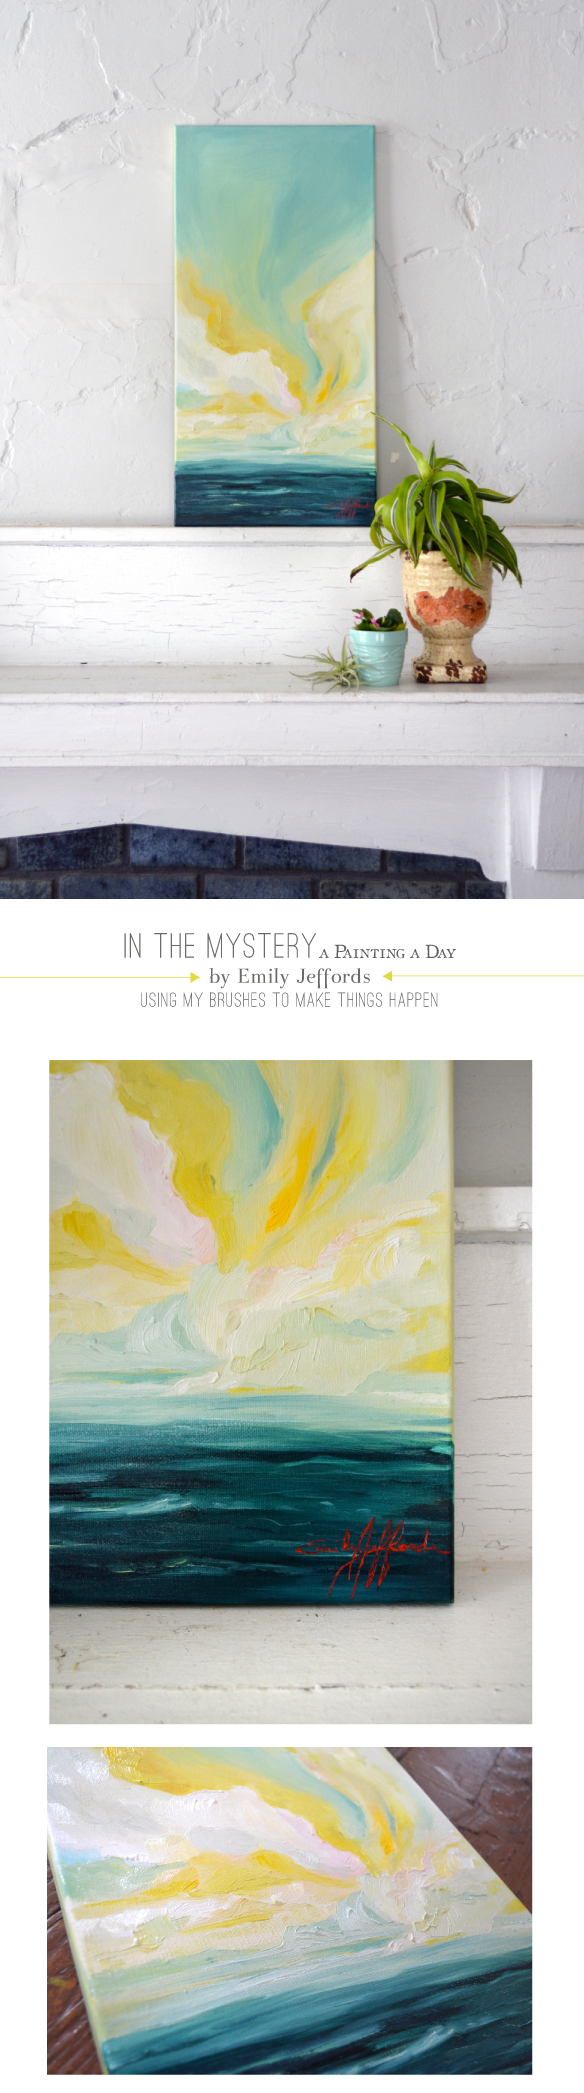 In the Mystery: A landscape painting a day by Emily Jeffords